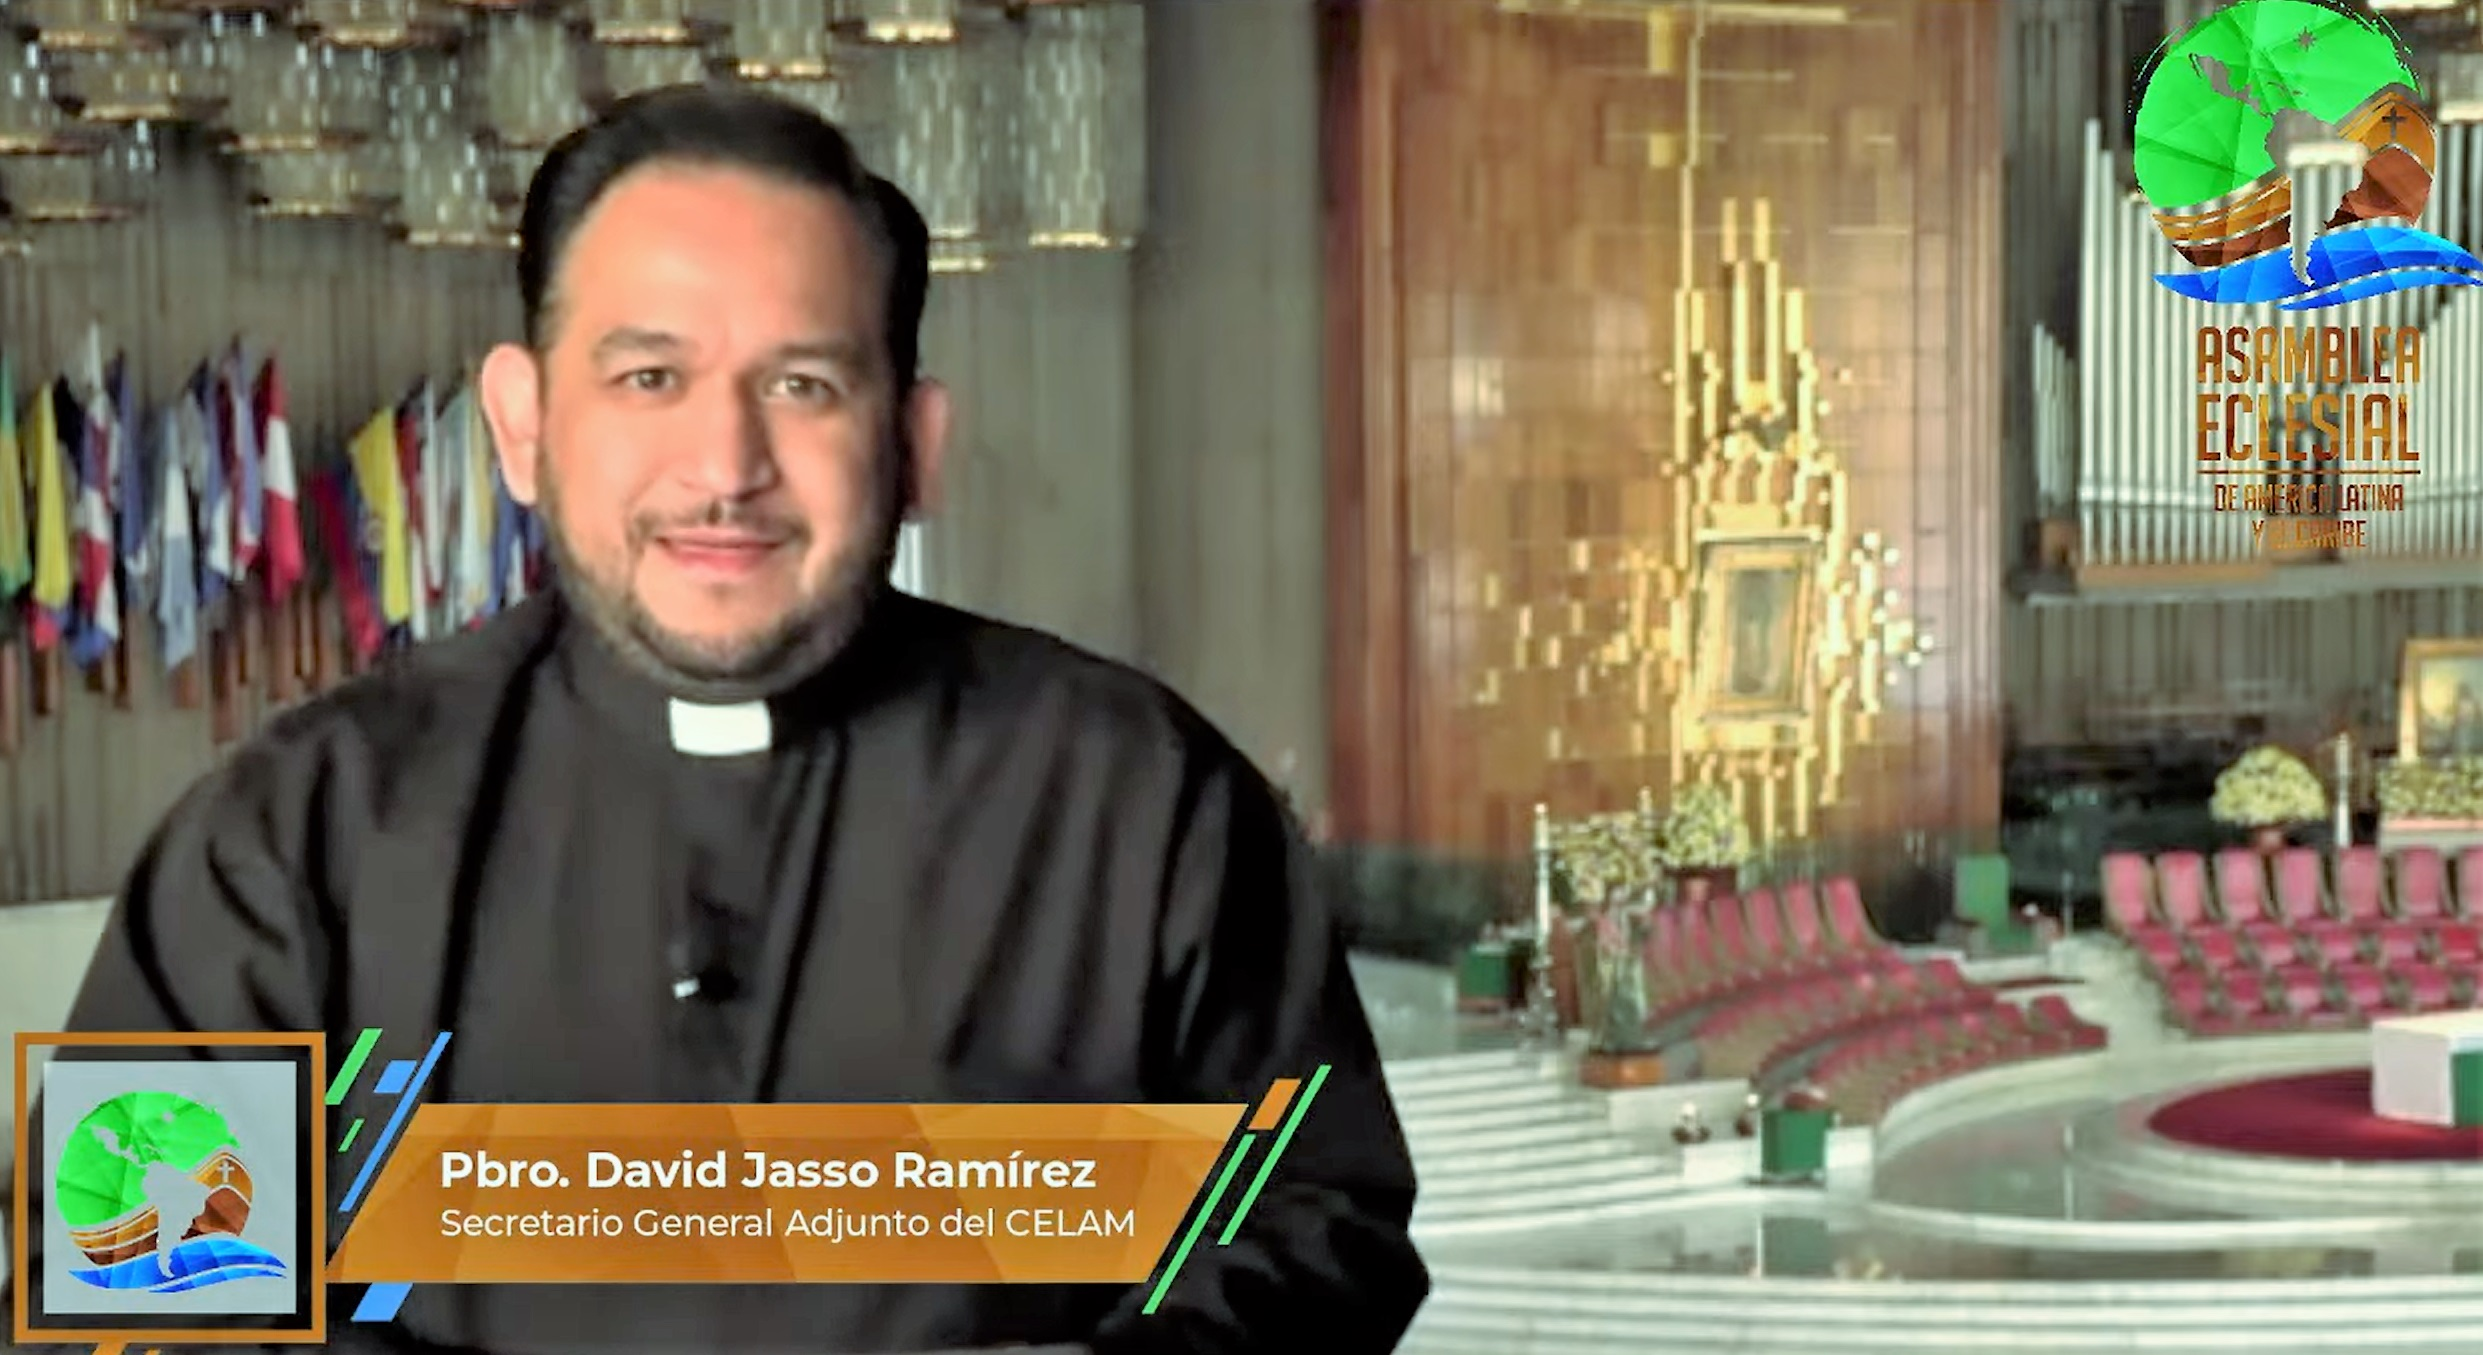 padre David Jasso